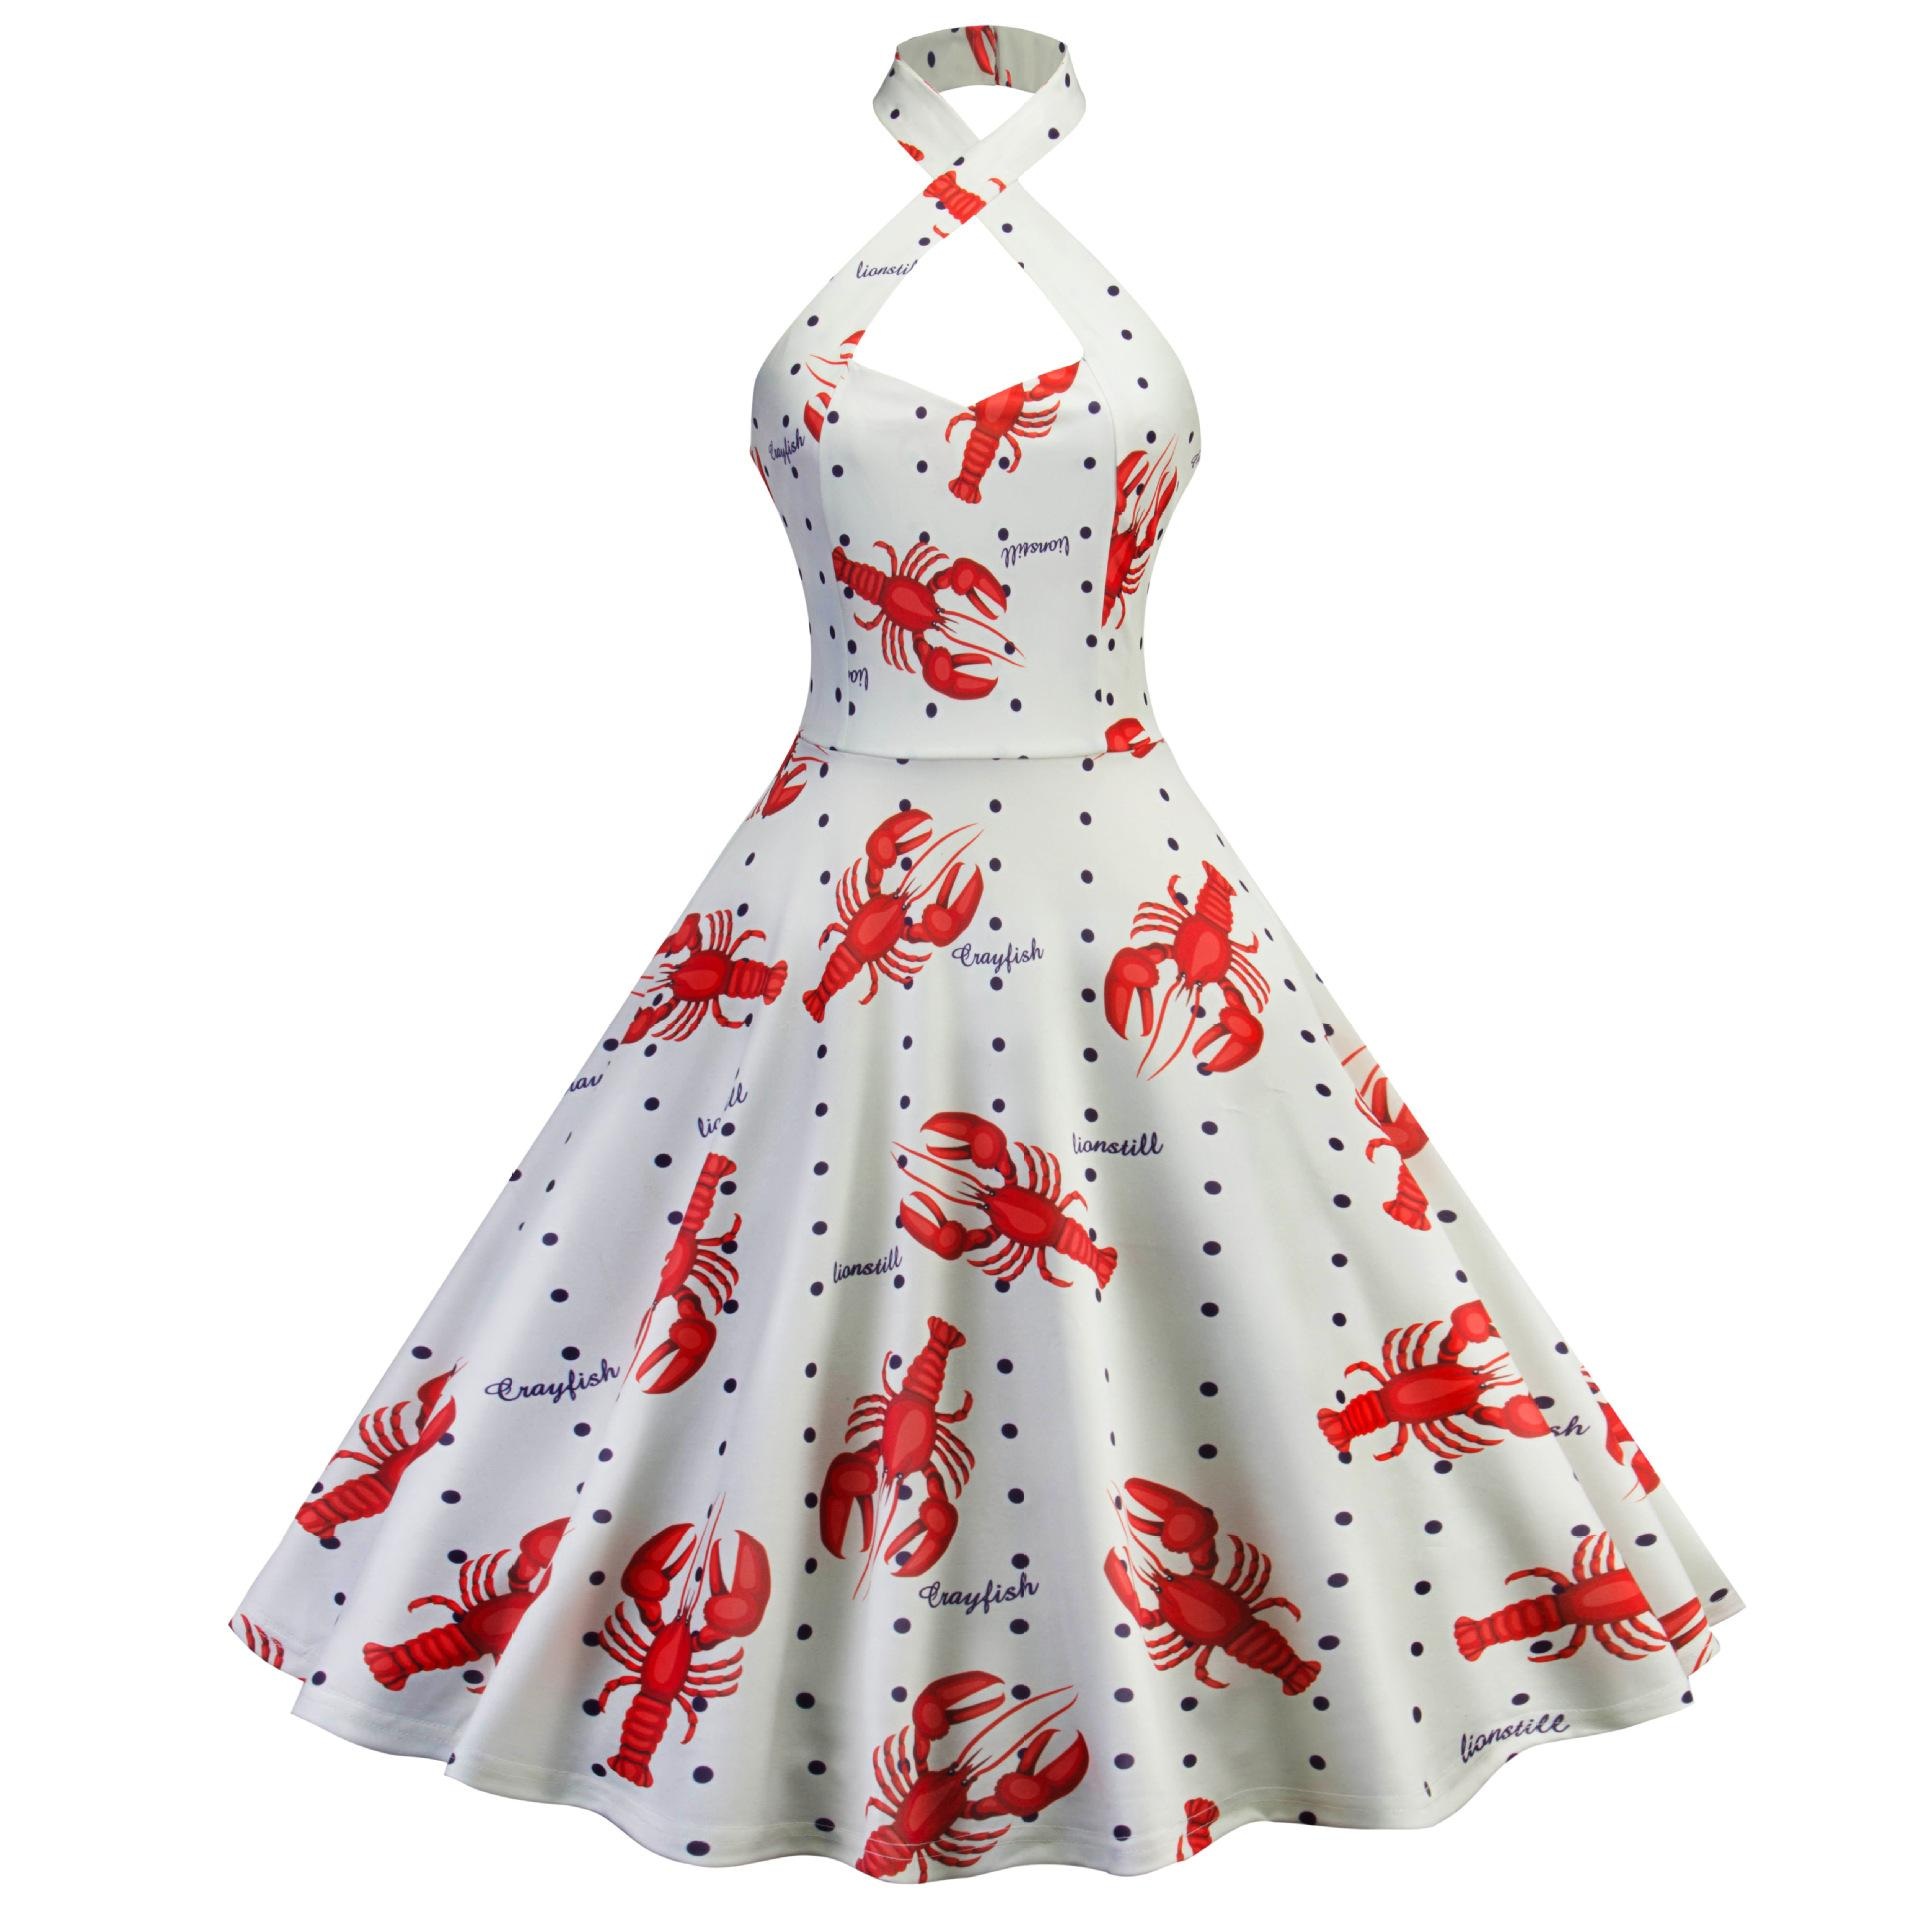 7cd7f6ac2b68 Lobster Printed Robe Femme Vintage 50s Rockabilly Dress 60s Pinup Elegant  Party Halter 2018 Summer Dresses For Women Big Swing Casual Dress Chiffon  Dresses ...